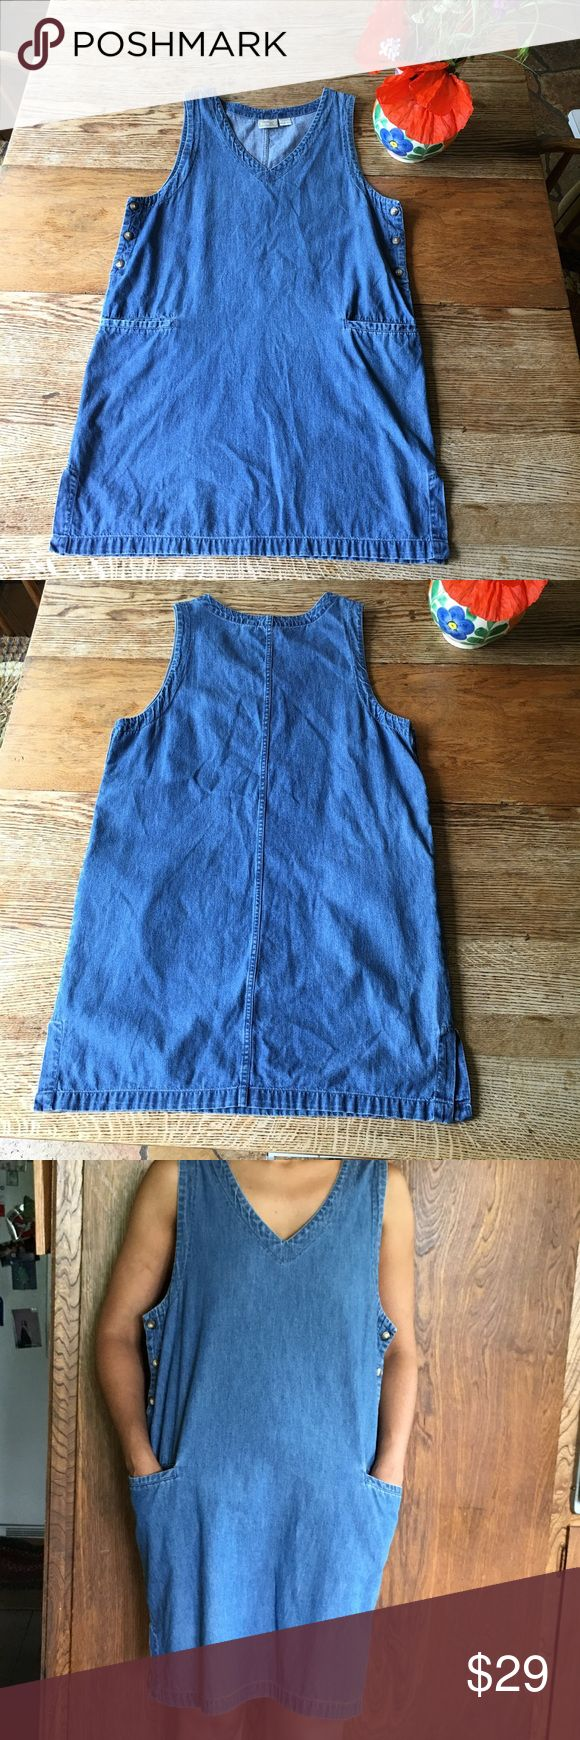 """% Cotton Sweet Jean Dress Vintage, sweet and soft Jean dress. In great shape with v-neck, waist pockets and side buttons. Size large. Modeled on size 4/6*** Approximately 34"""" from shoulder to hem. 100% cotton. Dresses"""